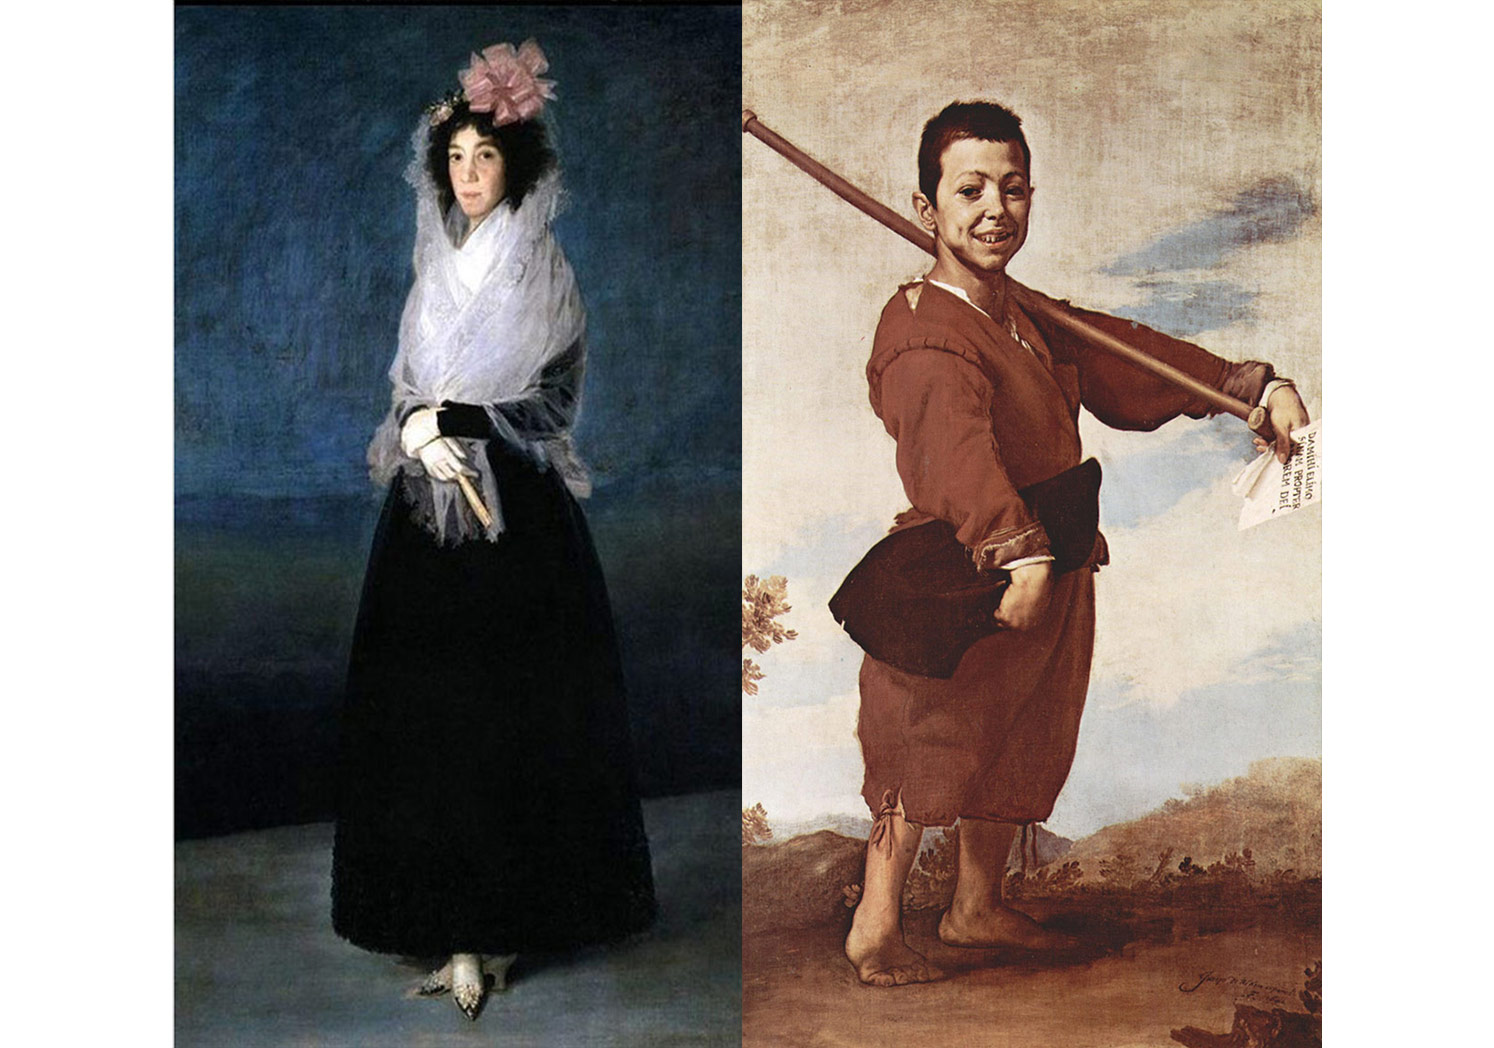 Francisco Goya Lucientes, Countess del Carpio, Marquise of La Solana, Madrid circa 1793 ve Jusepe de Ribera, Boy with Club-Foot, Naples, 1642. (Valerie METTAIS, Louvre-7 Centuries of Painting, 243, 186.)